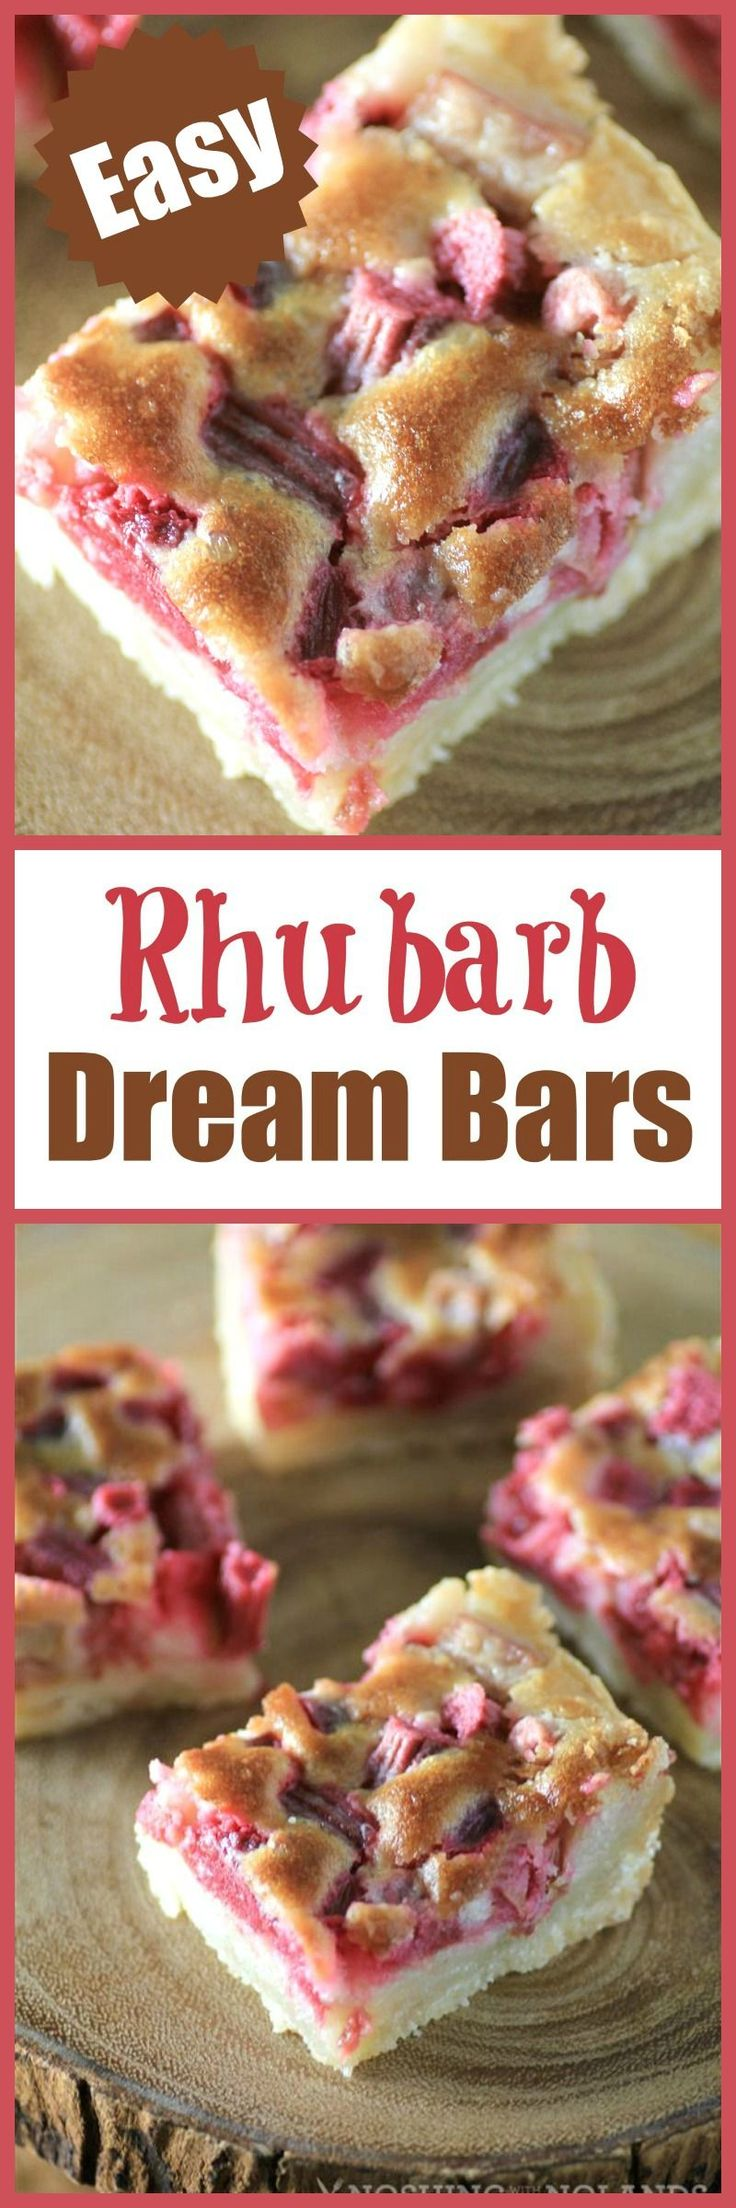 MWM - Rhubarb Dream Bars are up today for Mouth Watering Mondays on this bright and sunny day here in Alberta. Summer is underway....